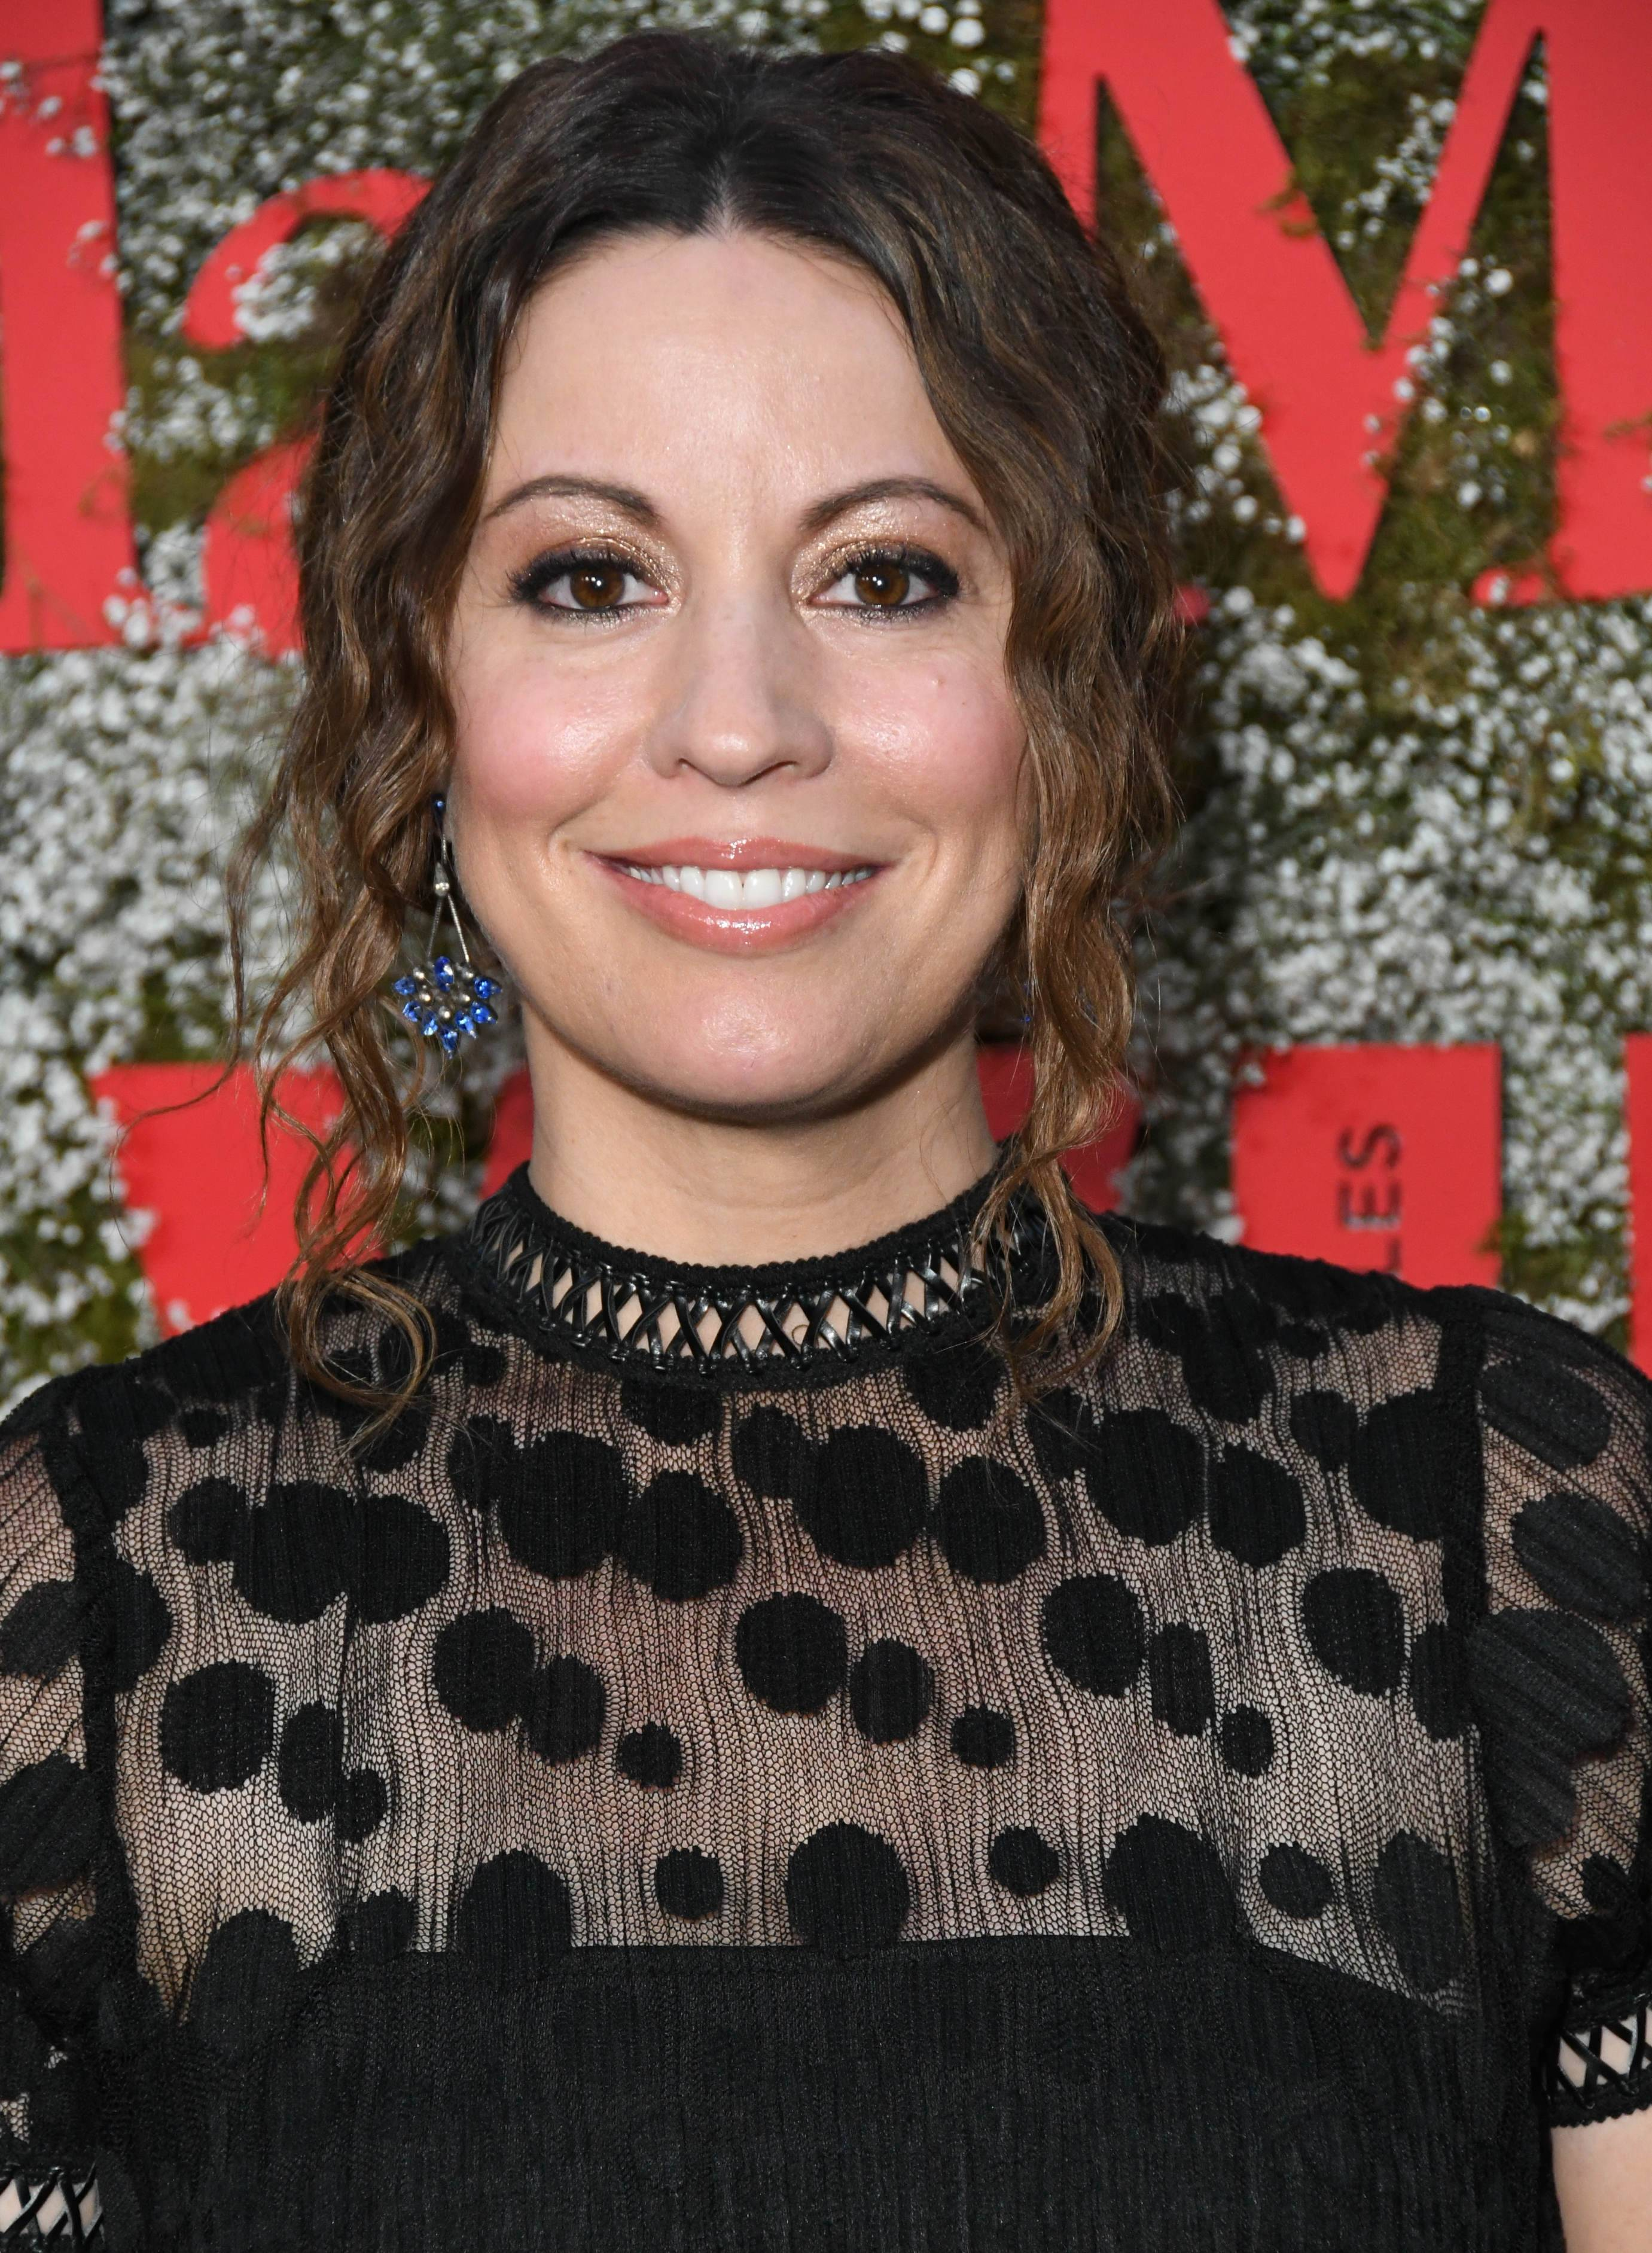 Cannon nackt Kay  Kay Cannon